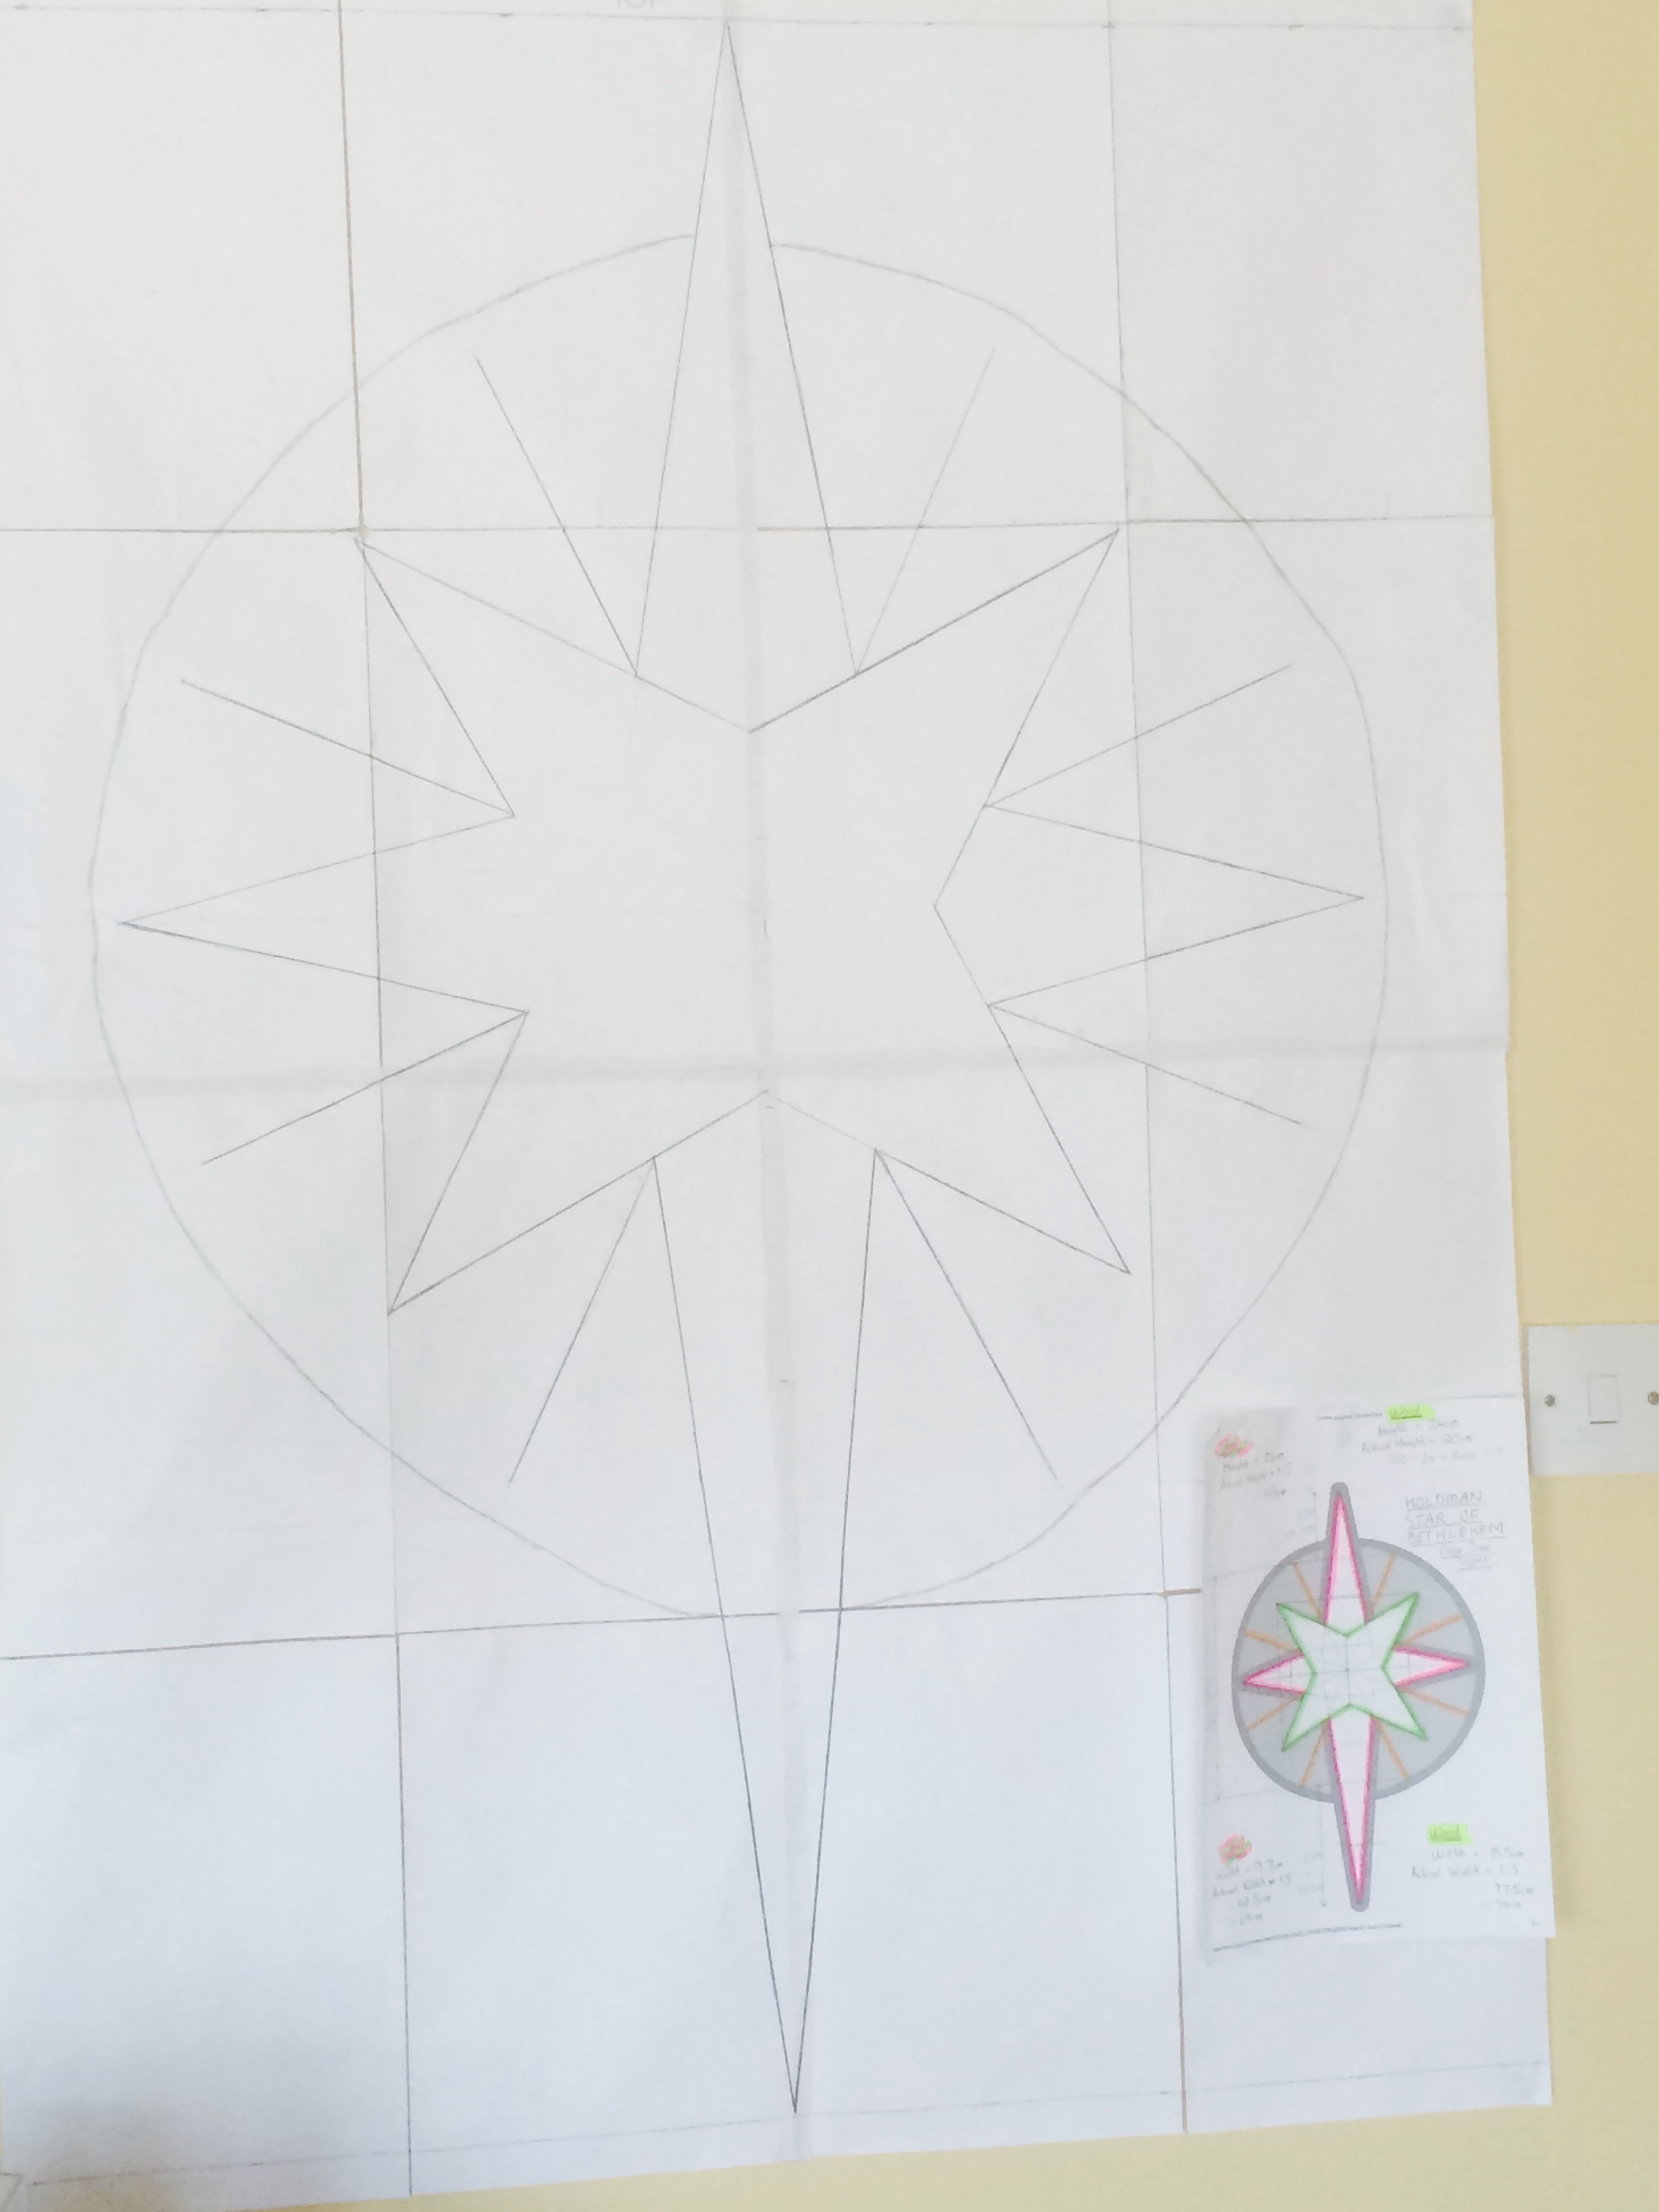 Designing the star